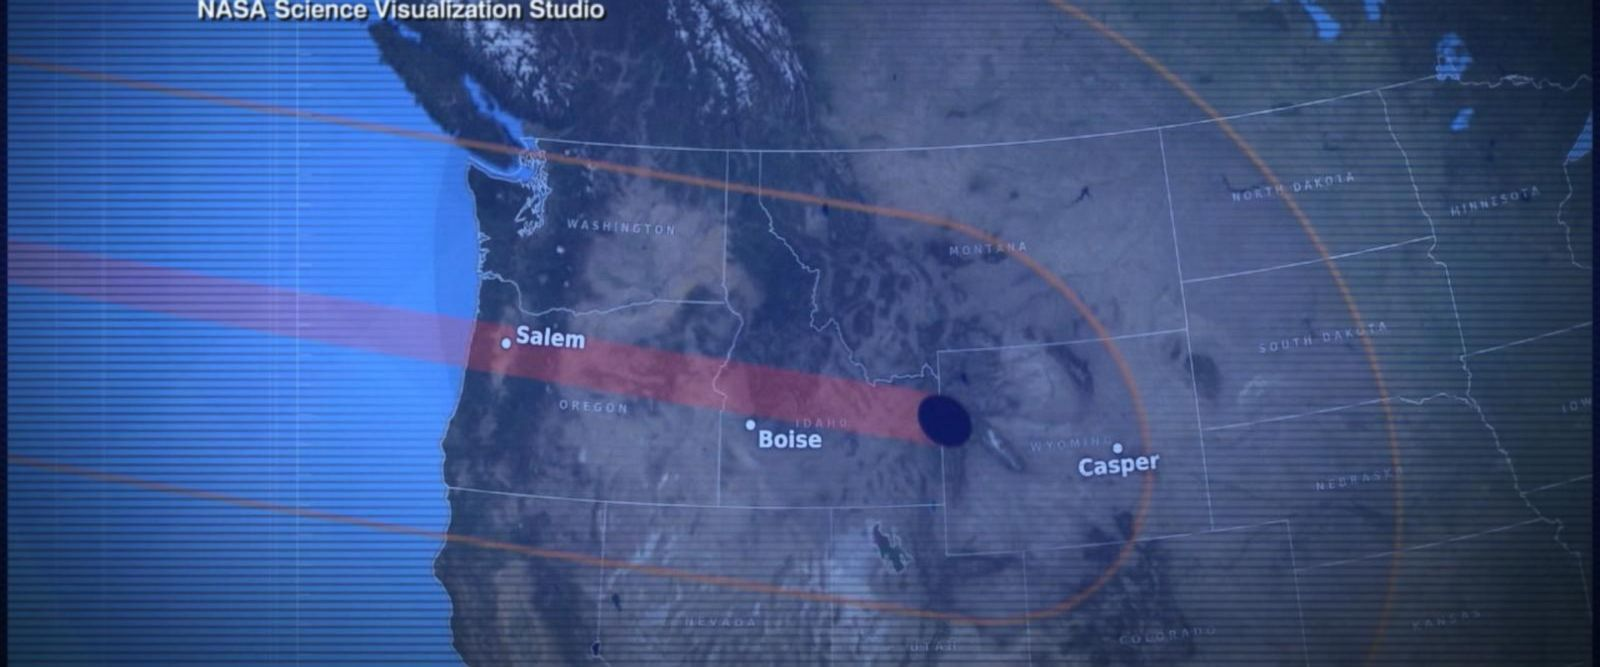 VIDEO: Following the complete path of the Great American Eclipse